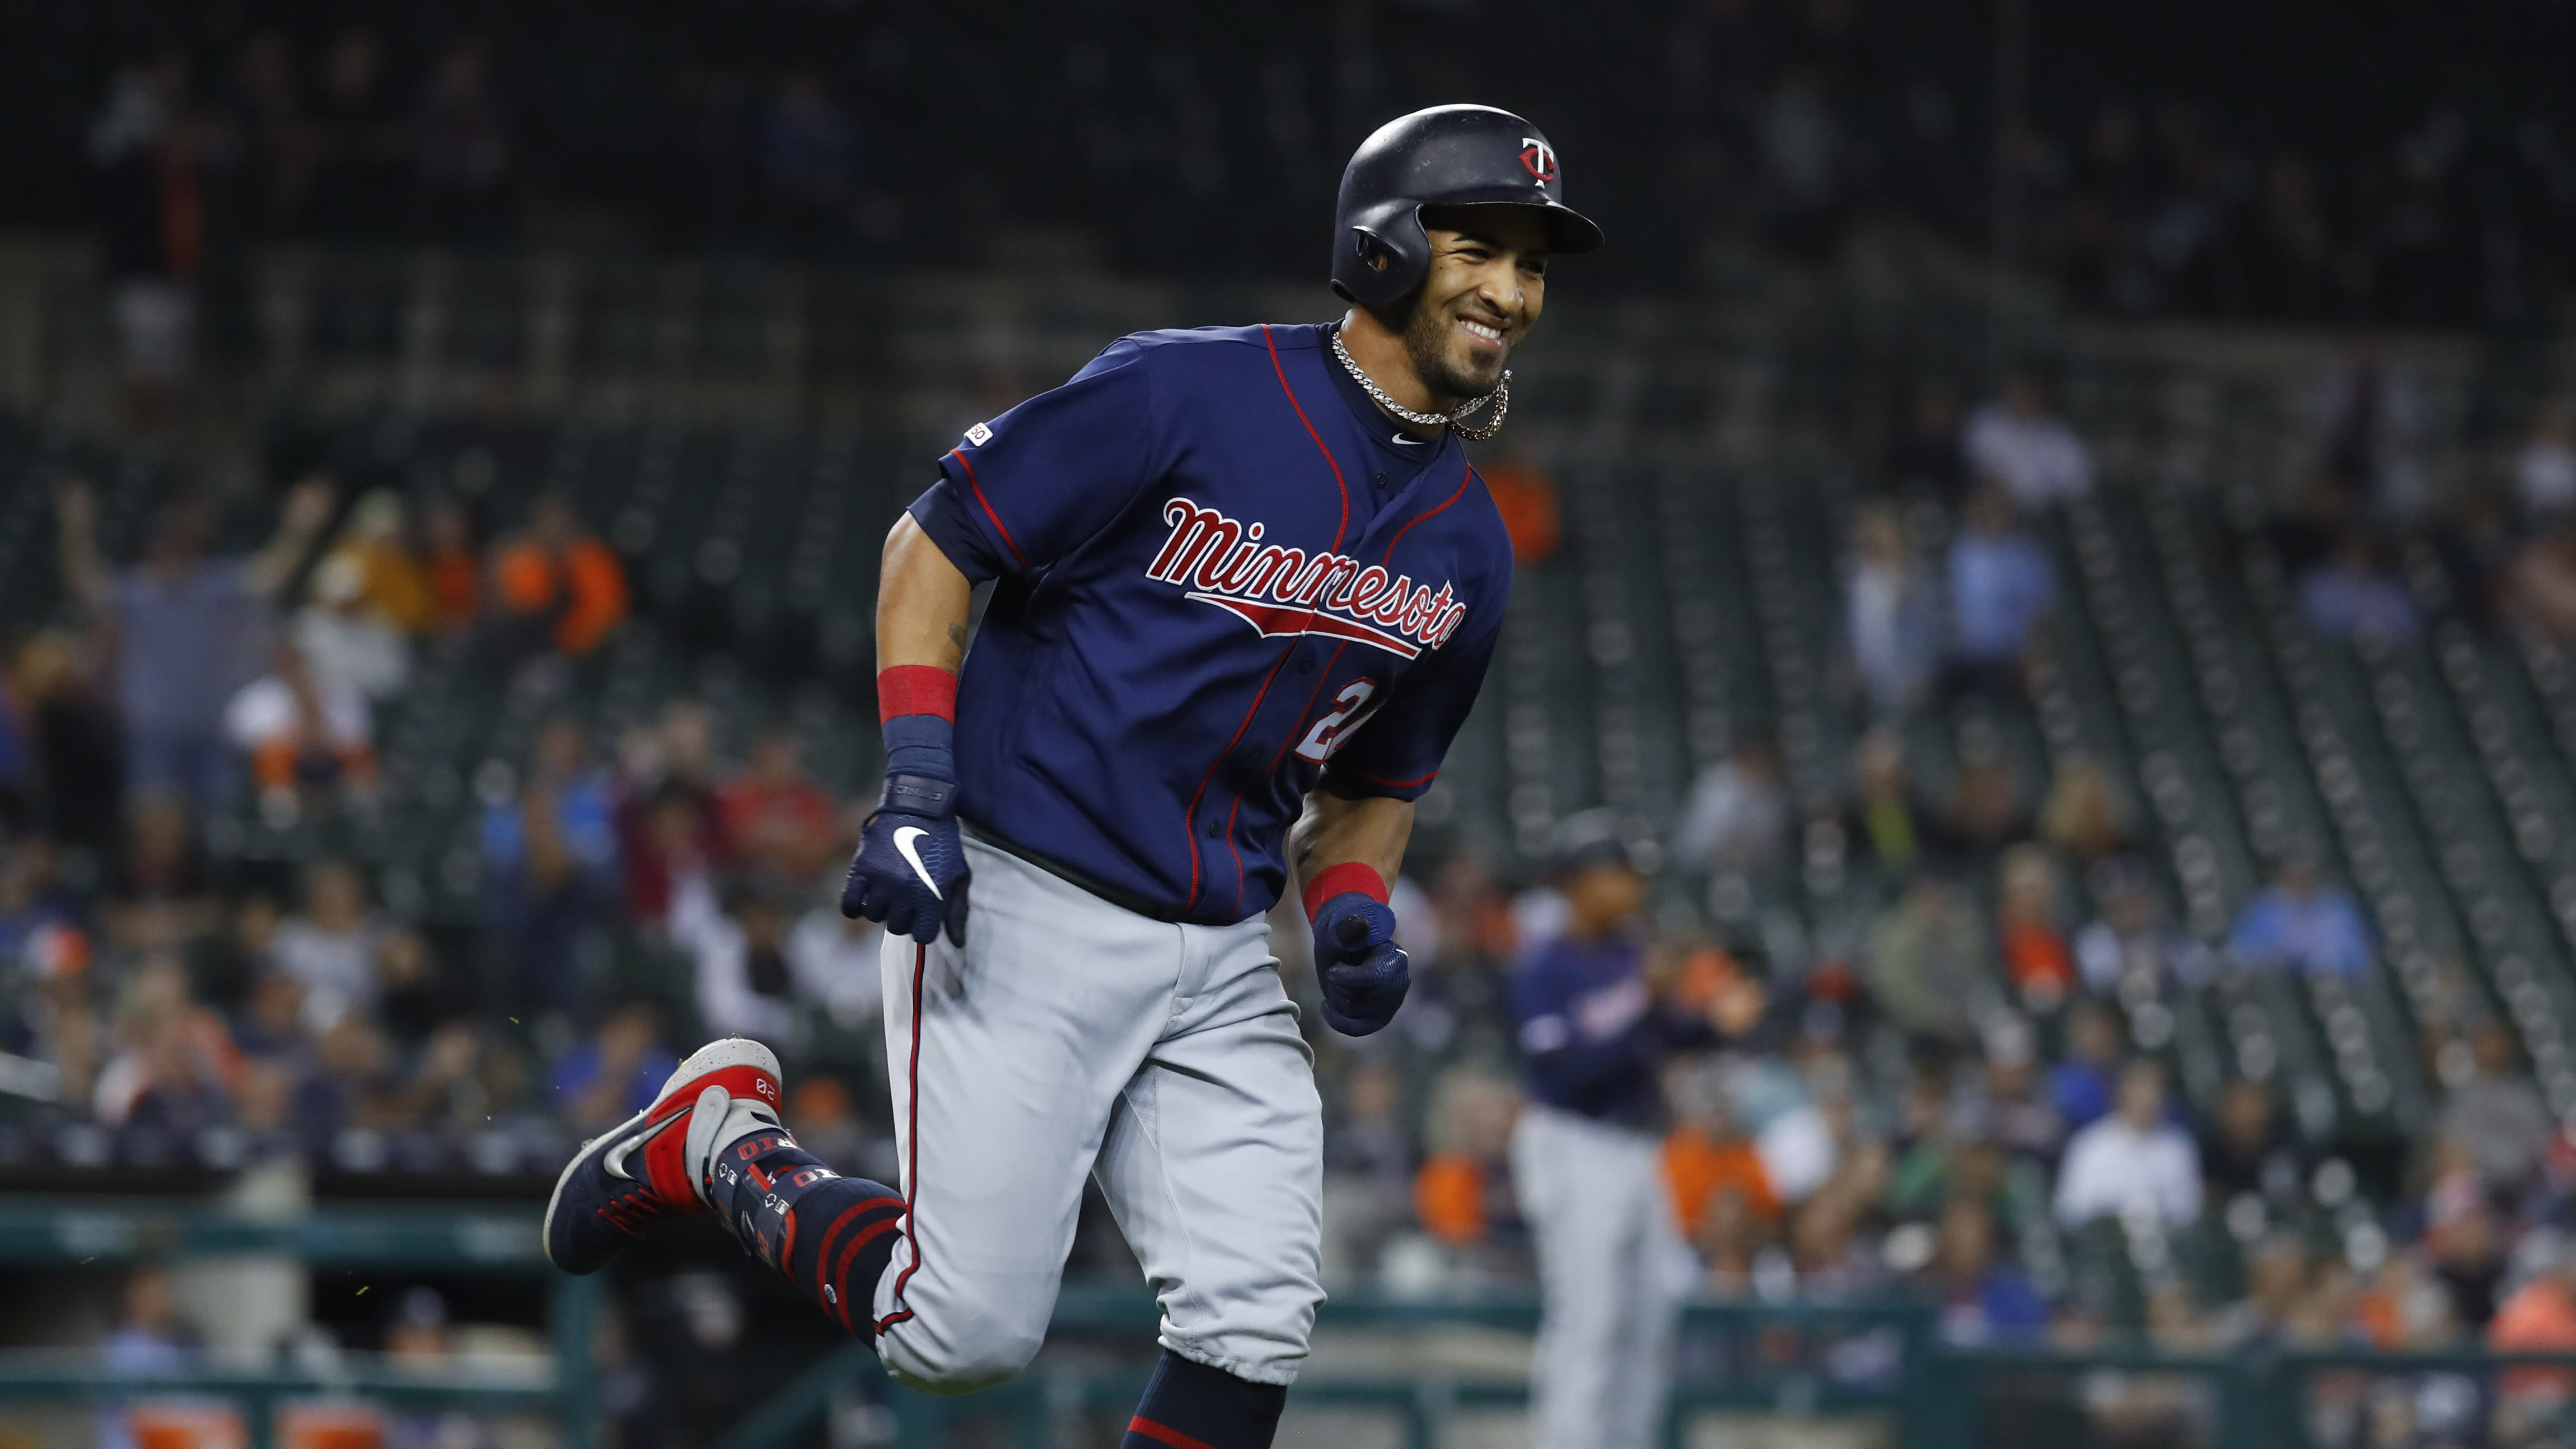 AL Central champion Twins first Major League Baseball team to hit 300 homers